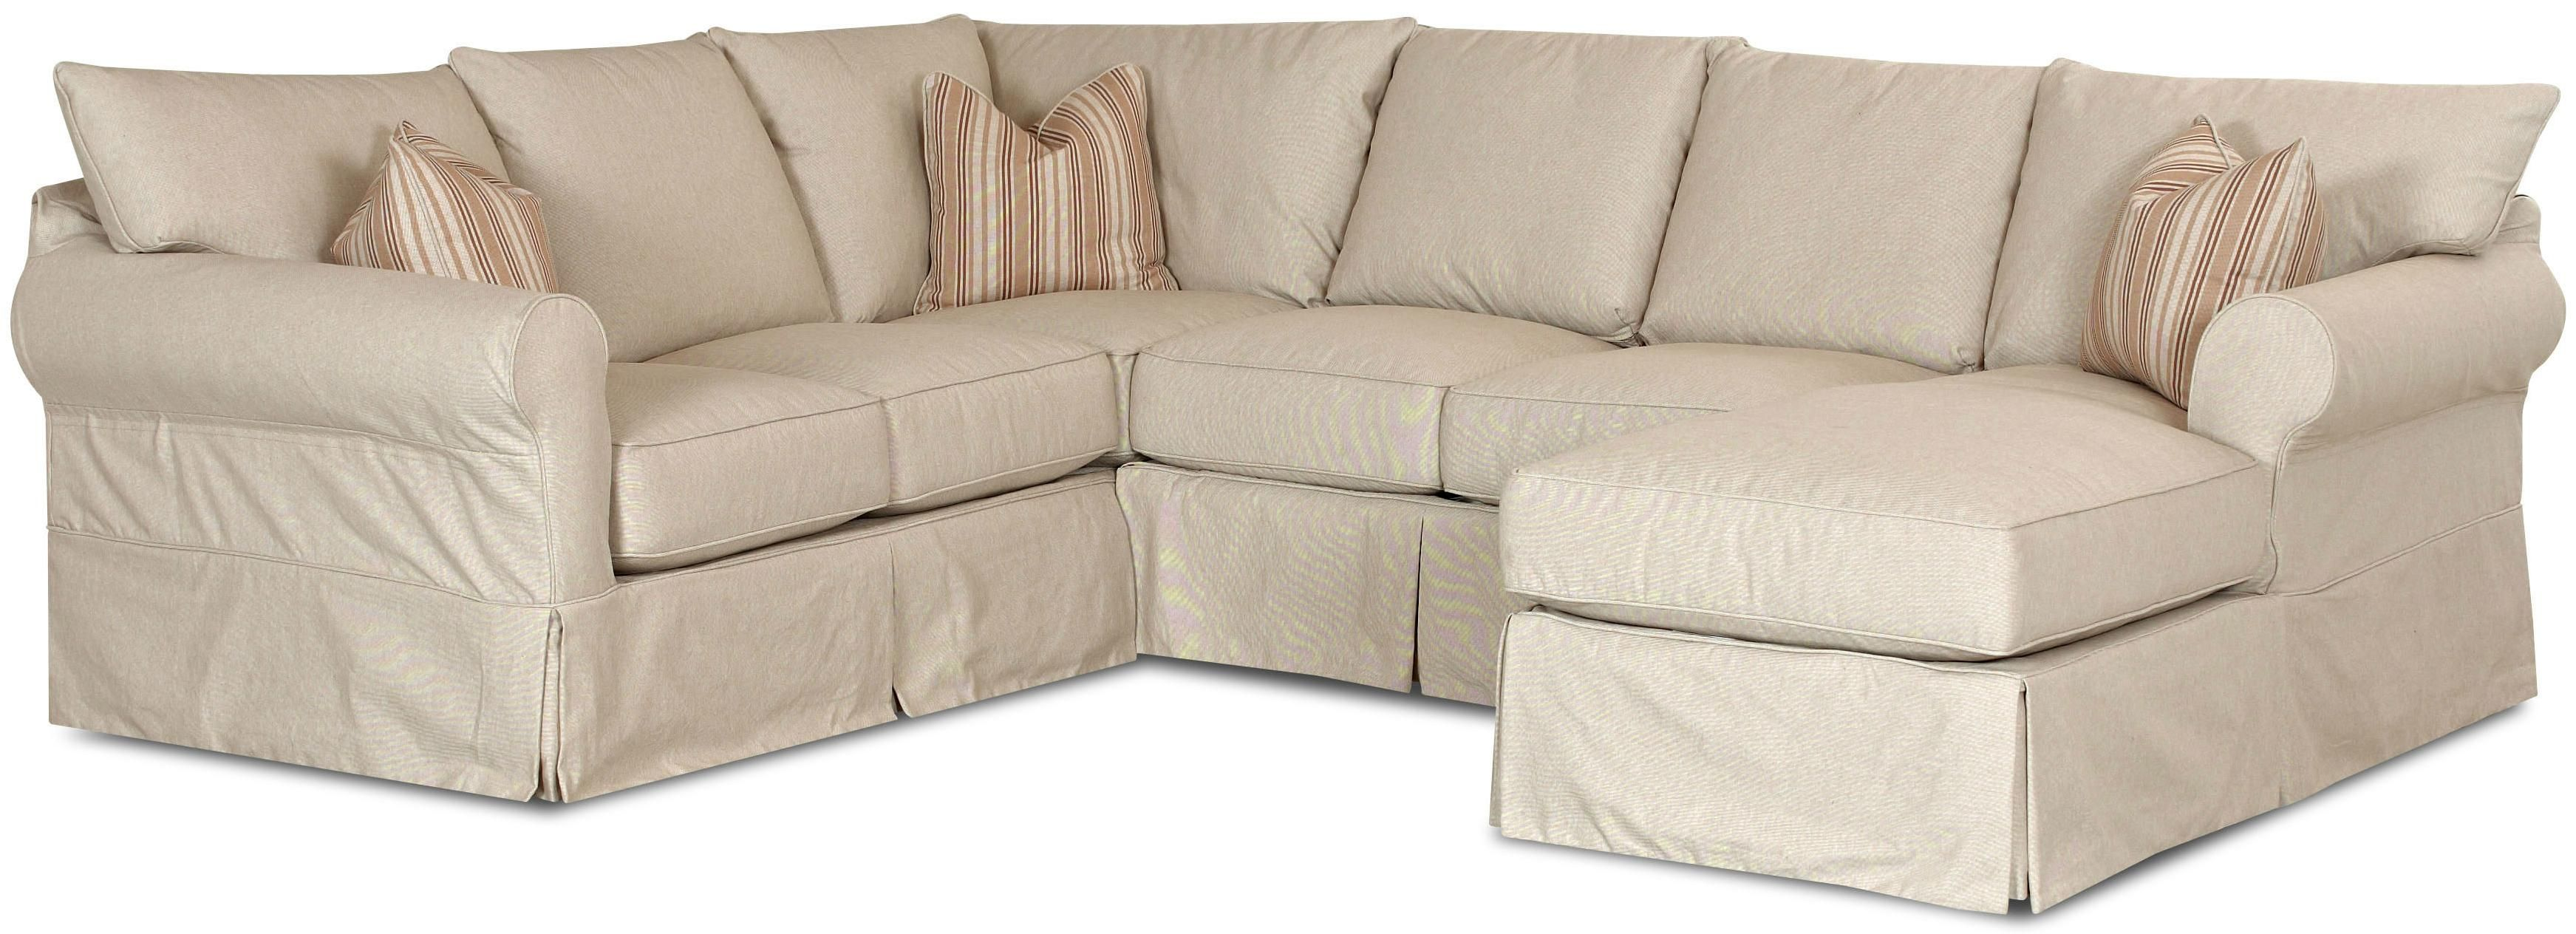 10 Slip Covers For Sectional Sofas , Most of the Brilliant ...